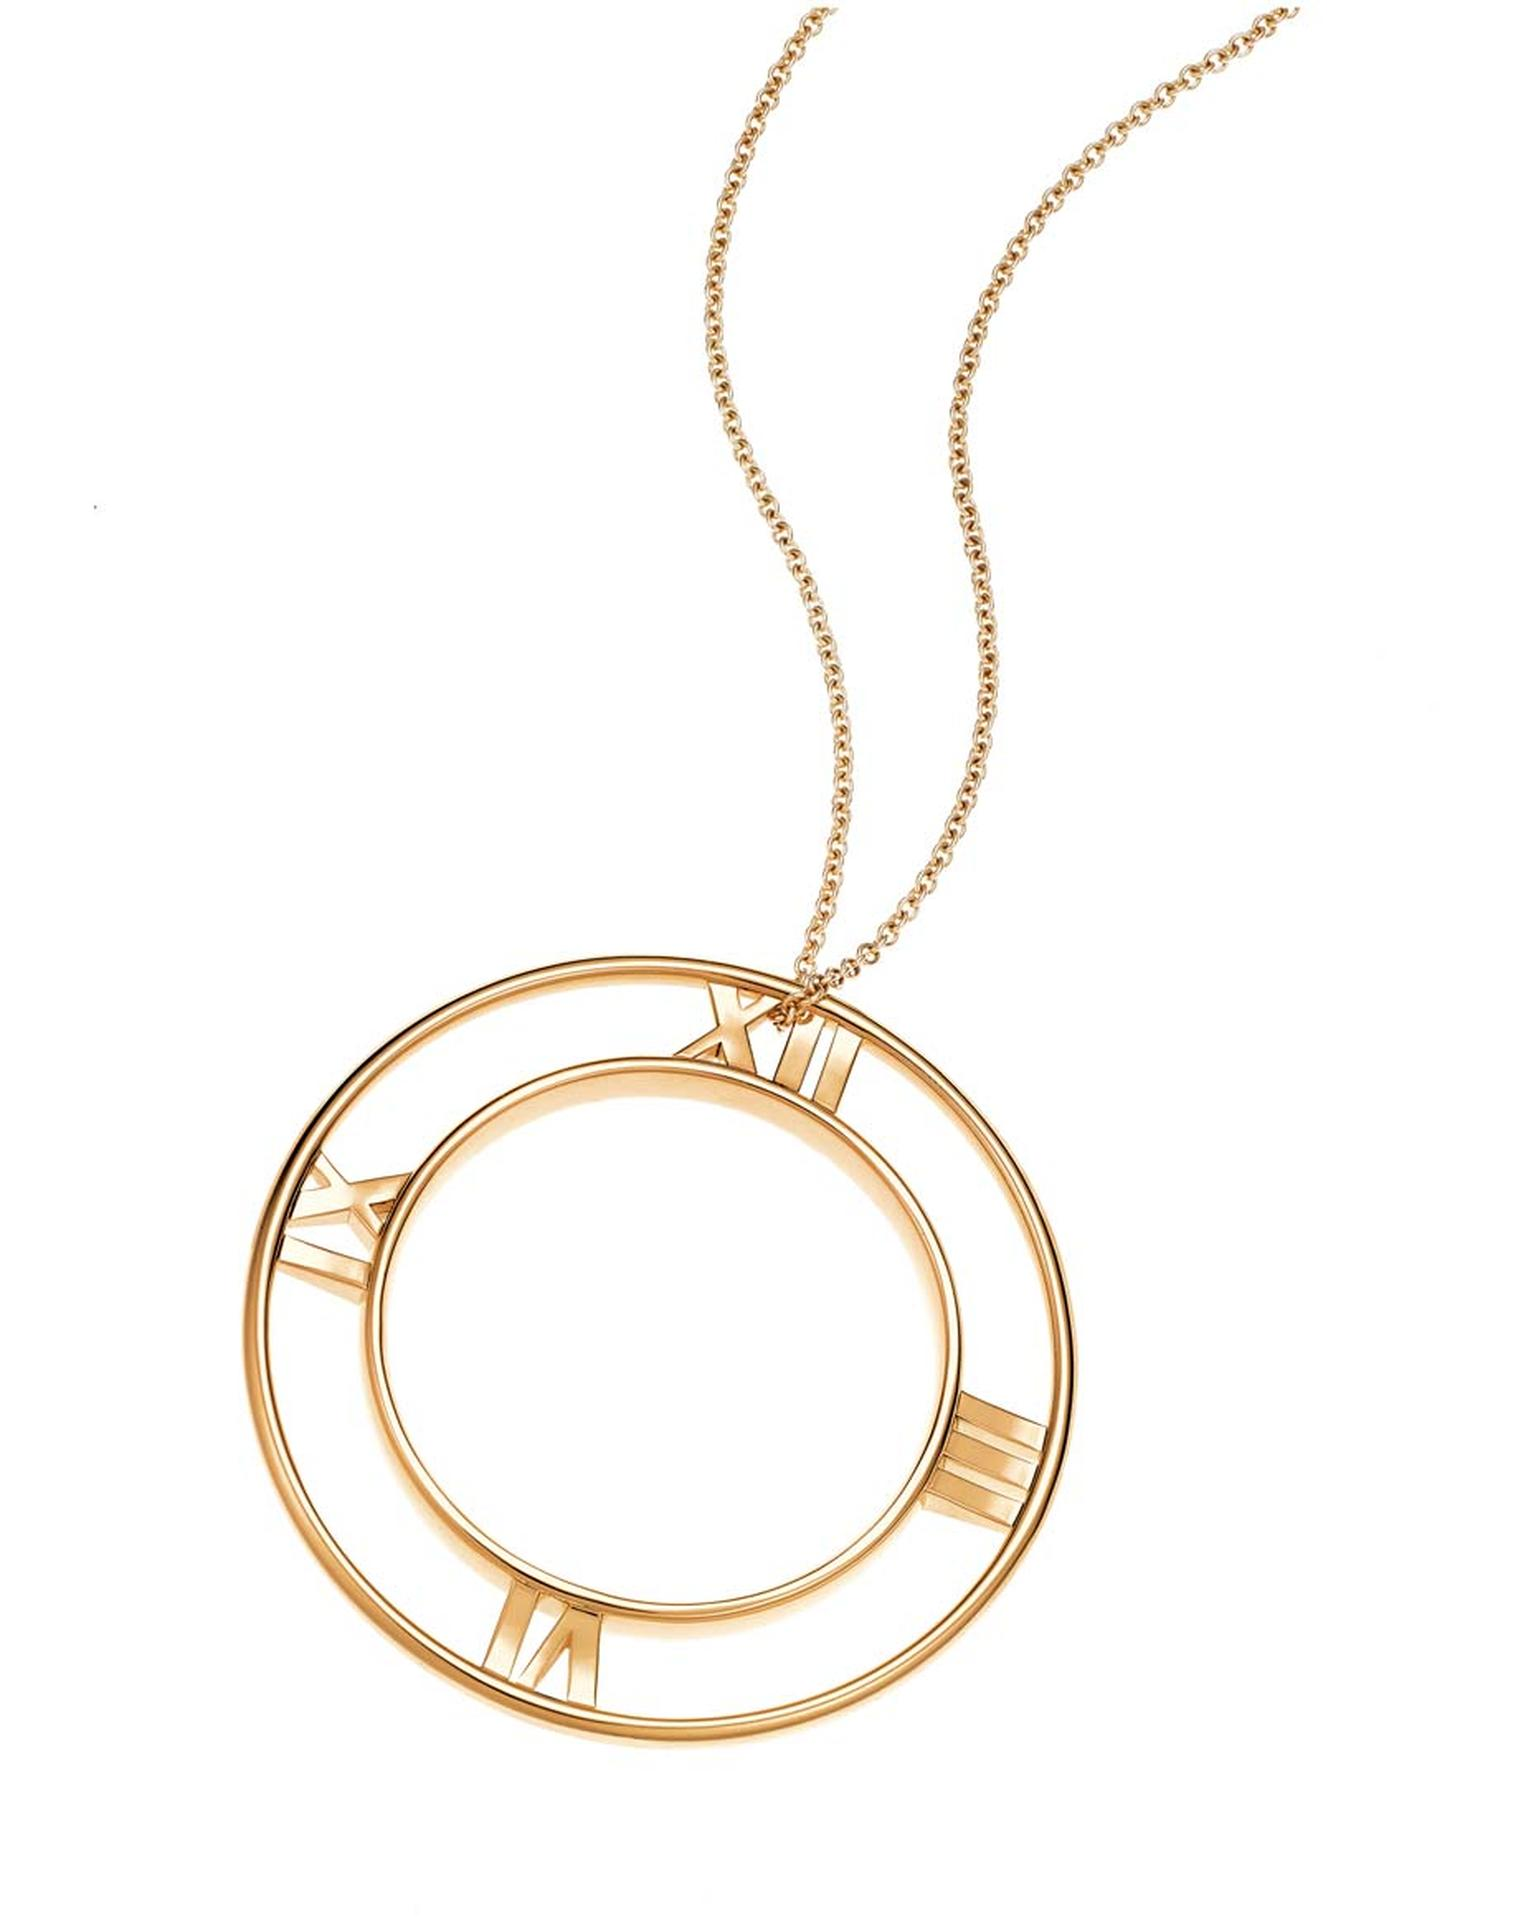 Tiffany & Co. Atlas II necklace in rose gold